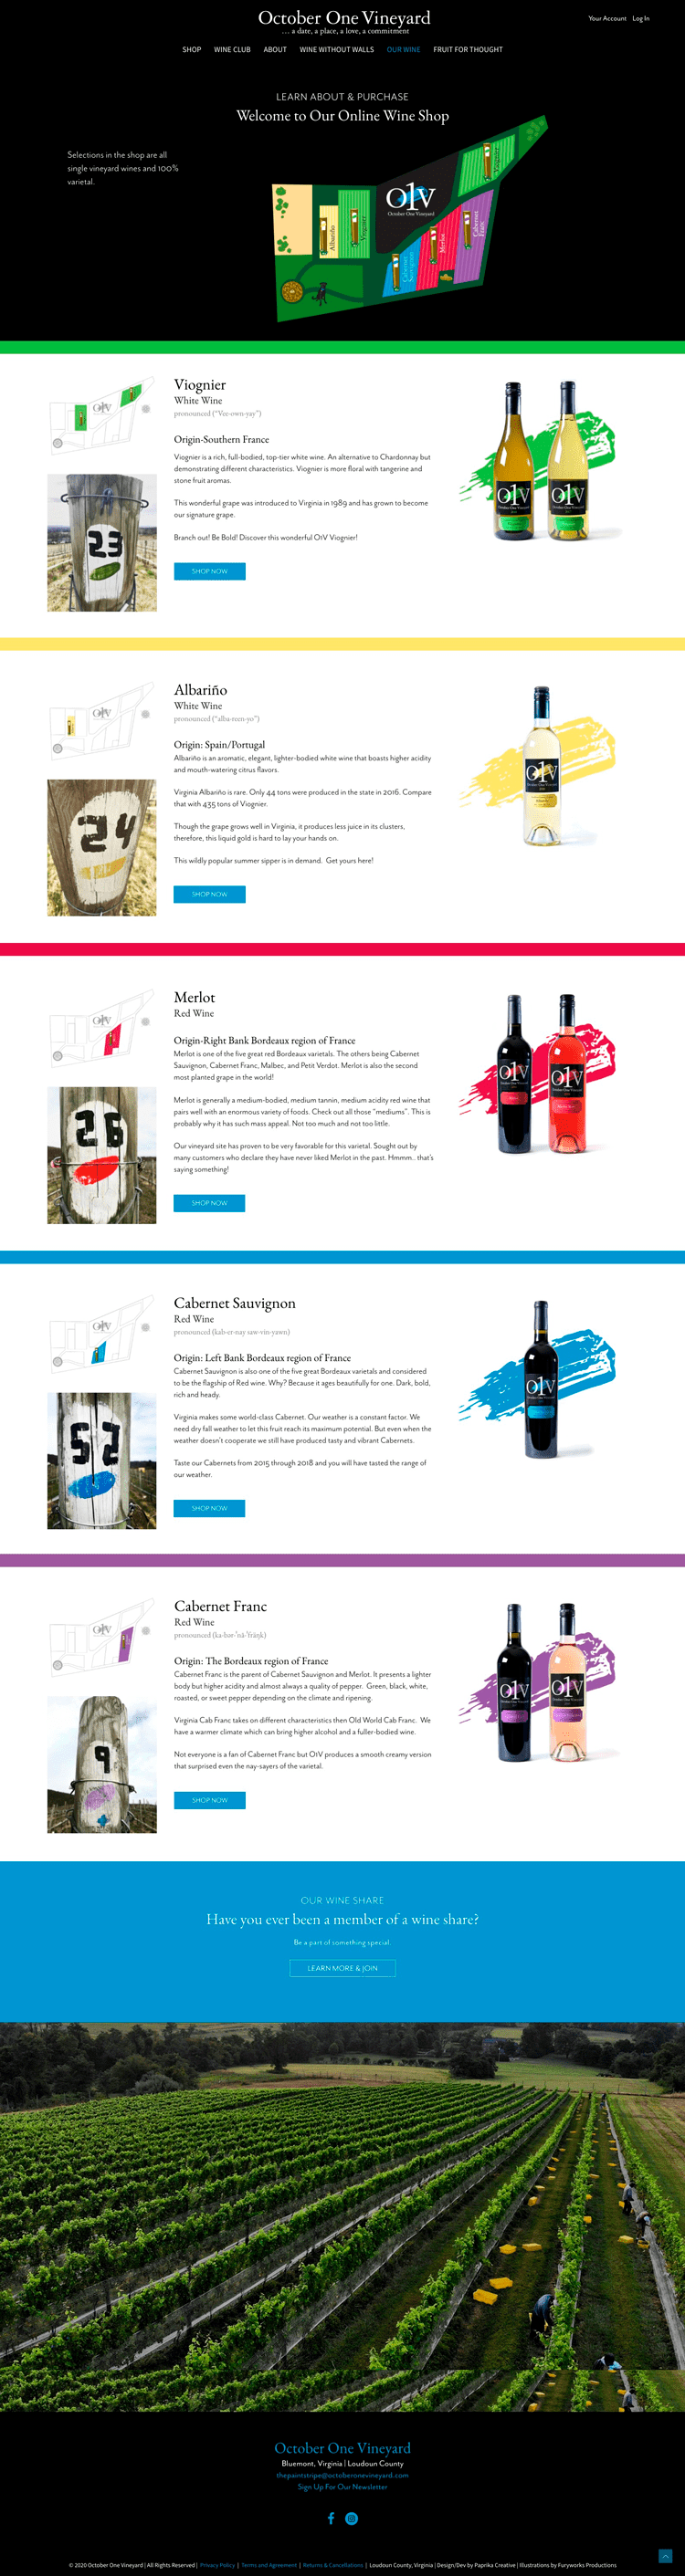 octoberonevineyard.com-wines